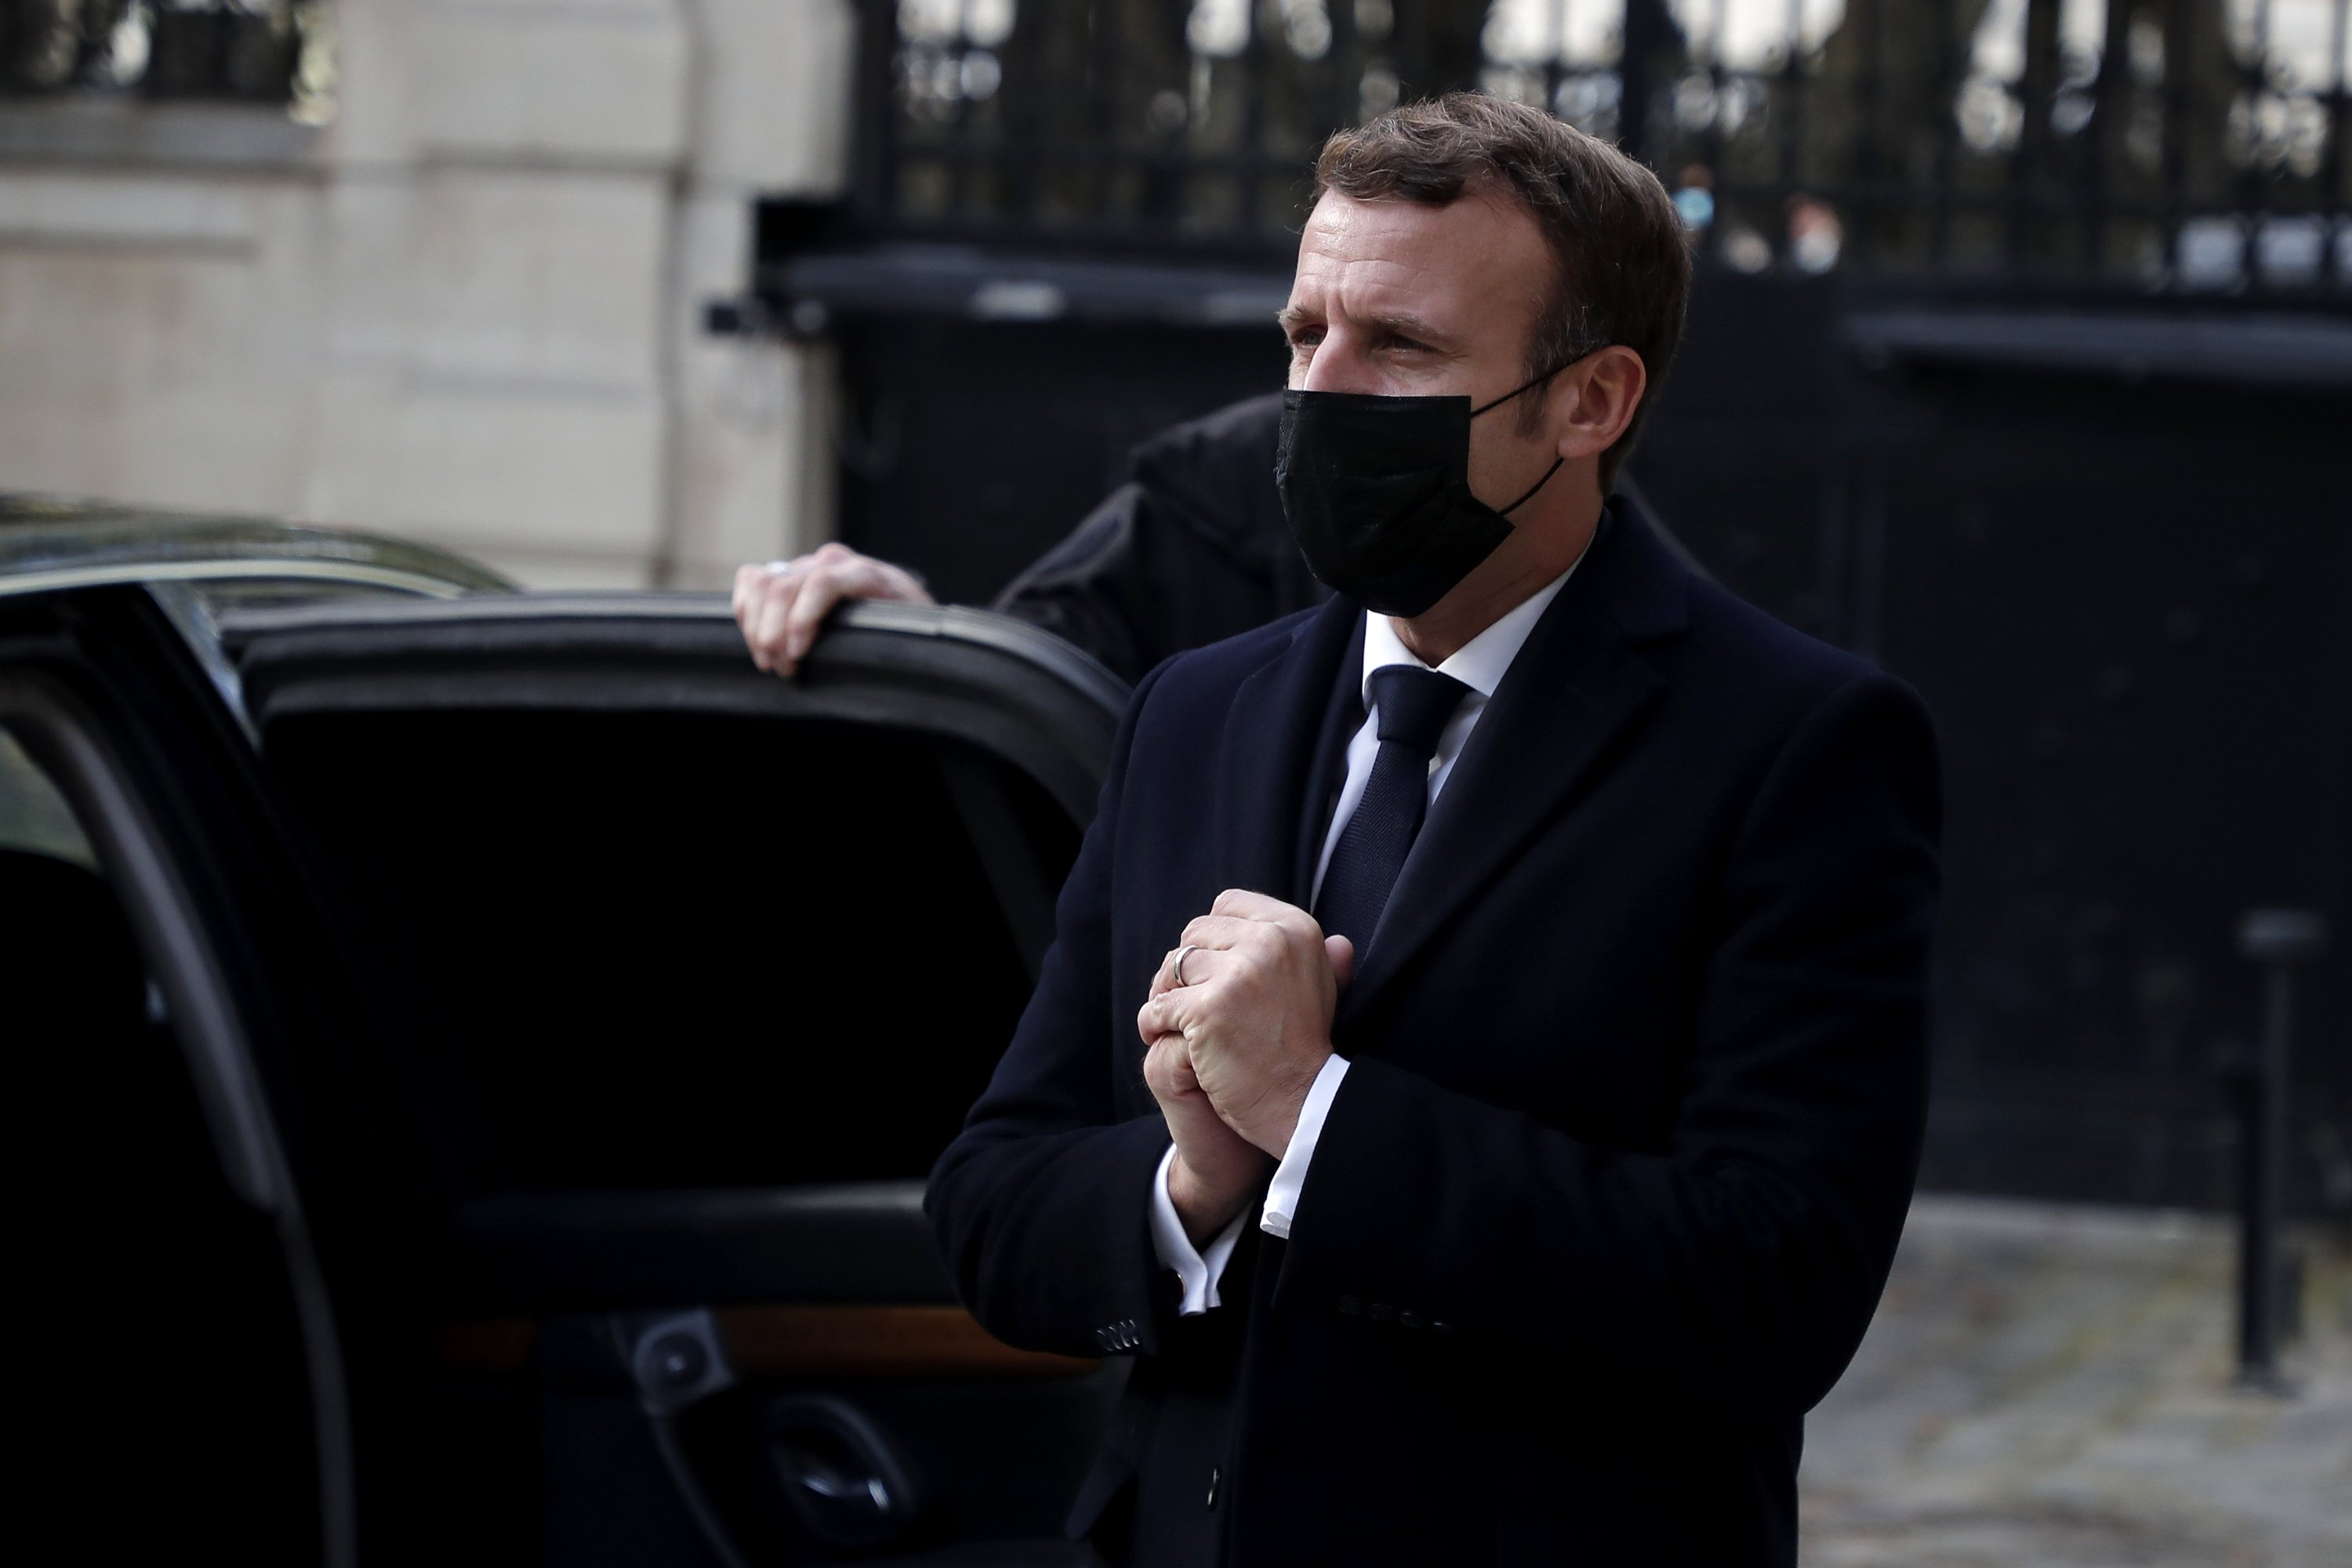 A French Play Freedom Of Expression Or Freedom Of Suppression Daily Sabah